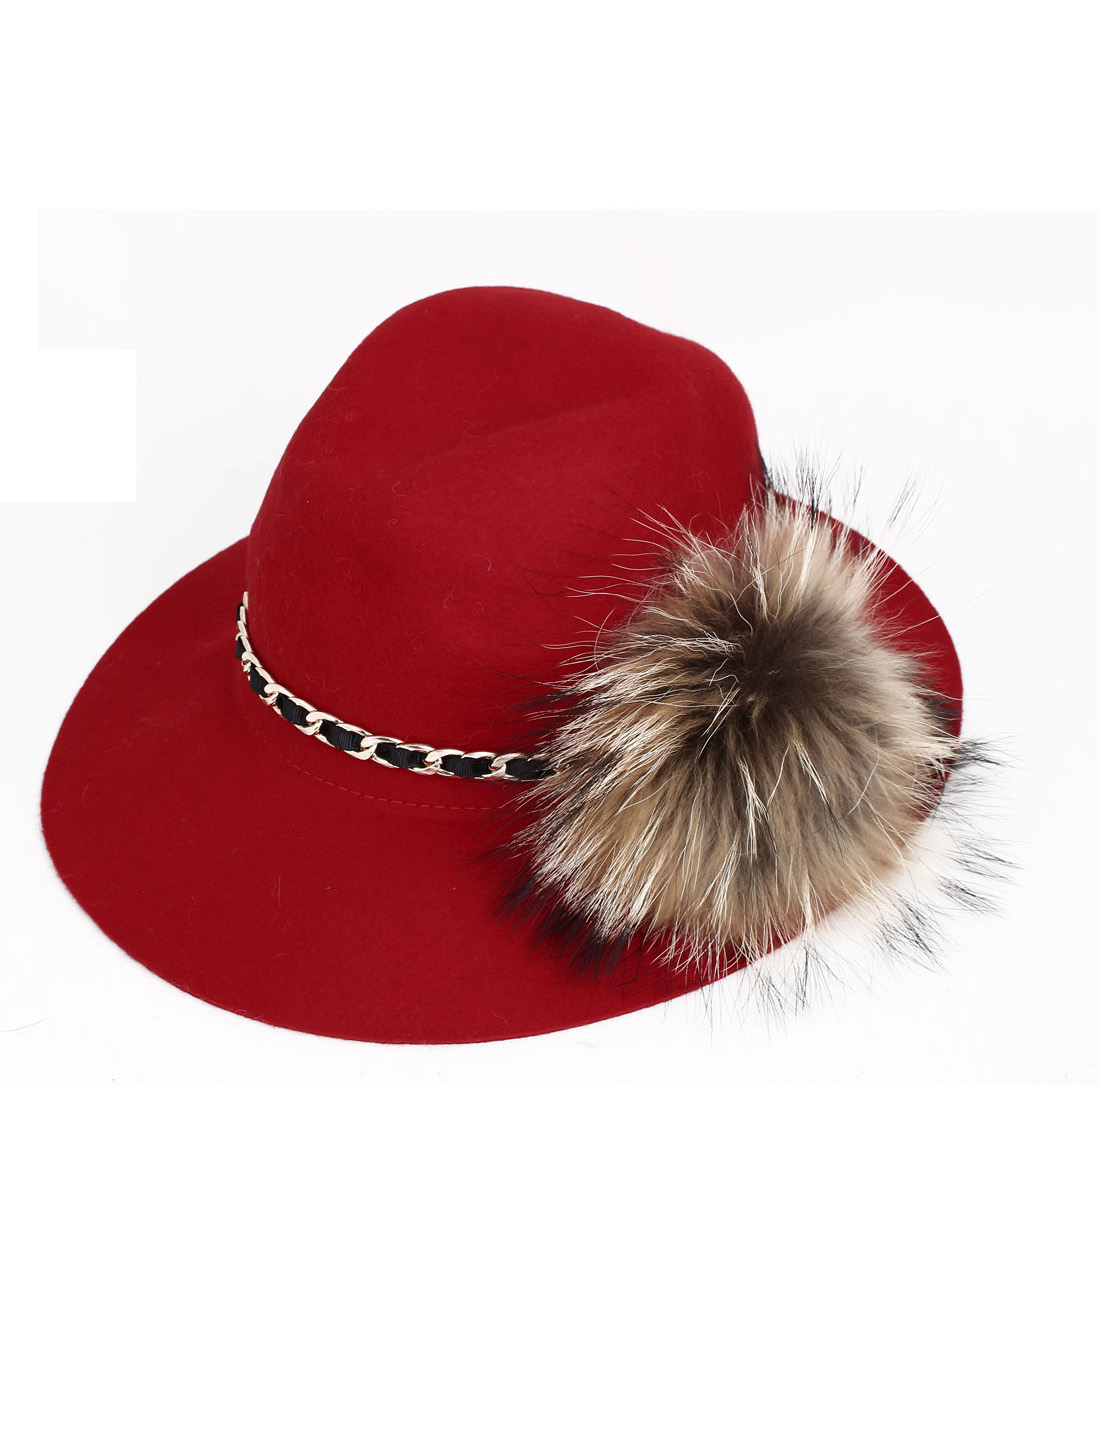 Lady Women Felt Wide Brim Metal Chain Decor Winter Fedora Cloche Hat Cap Red